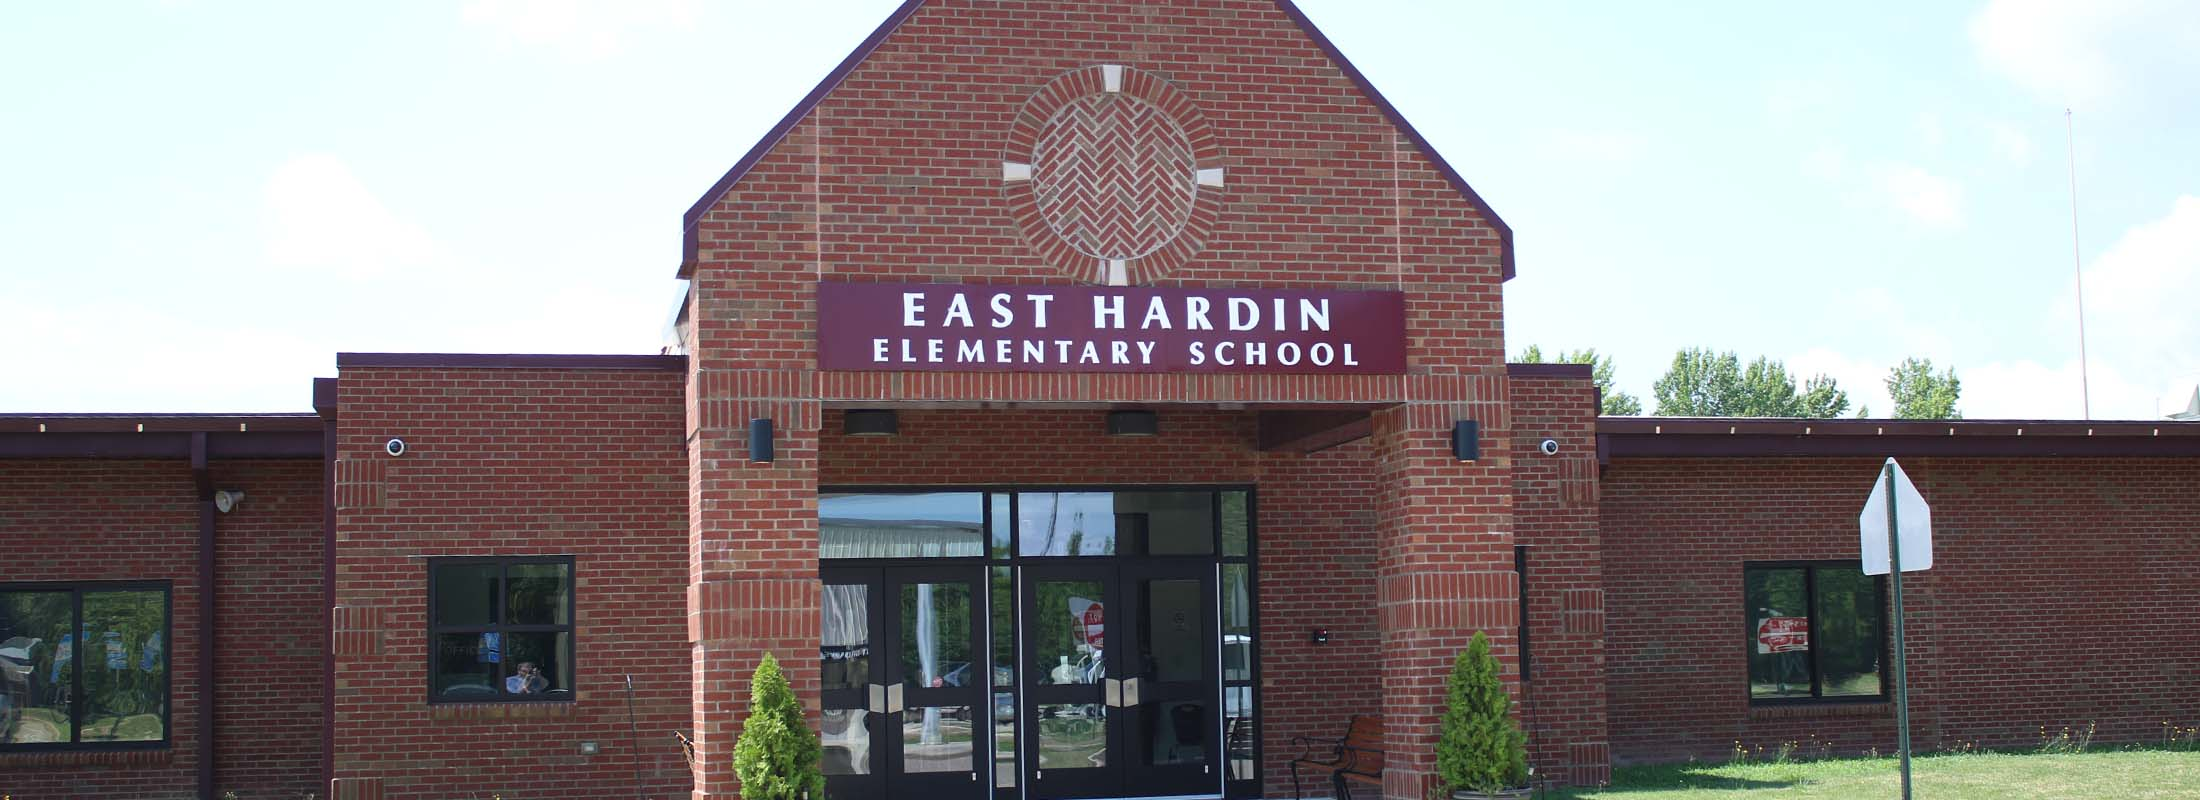 east hardin elementary school front entrance